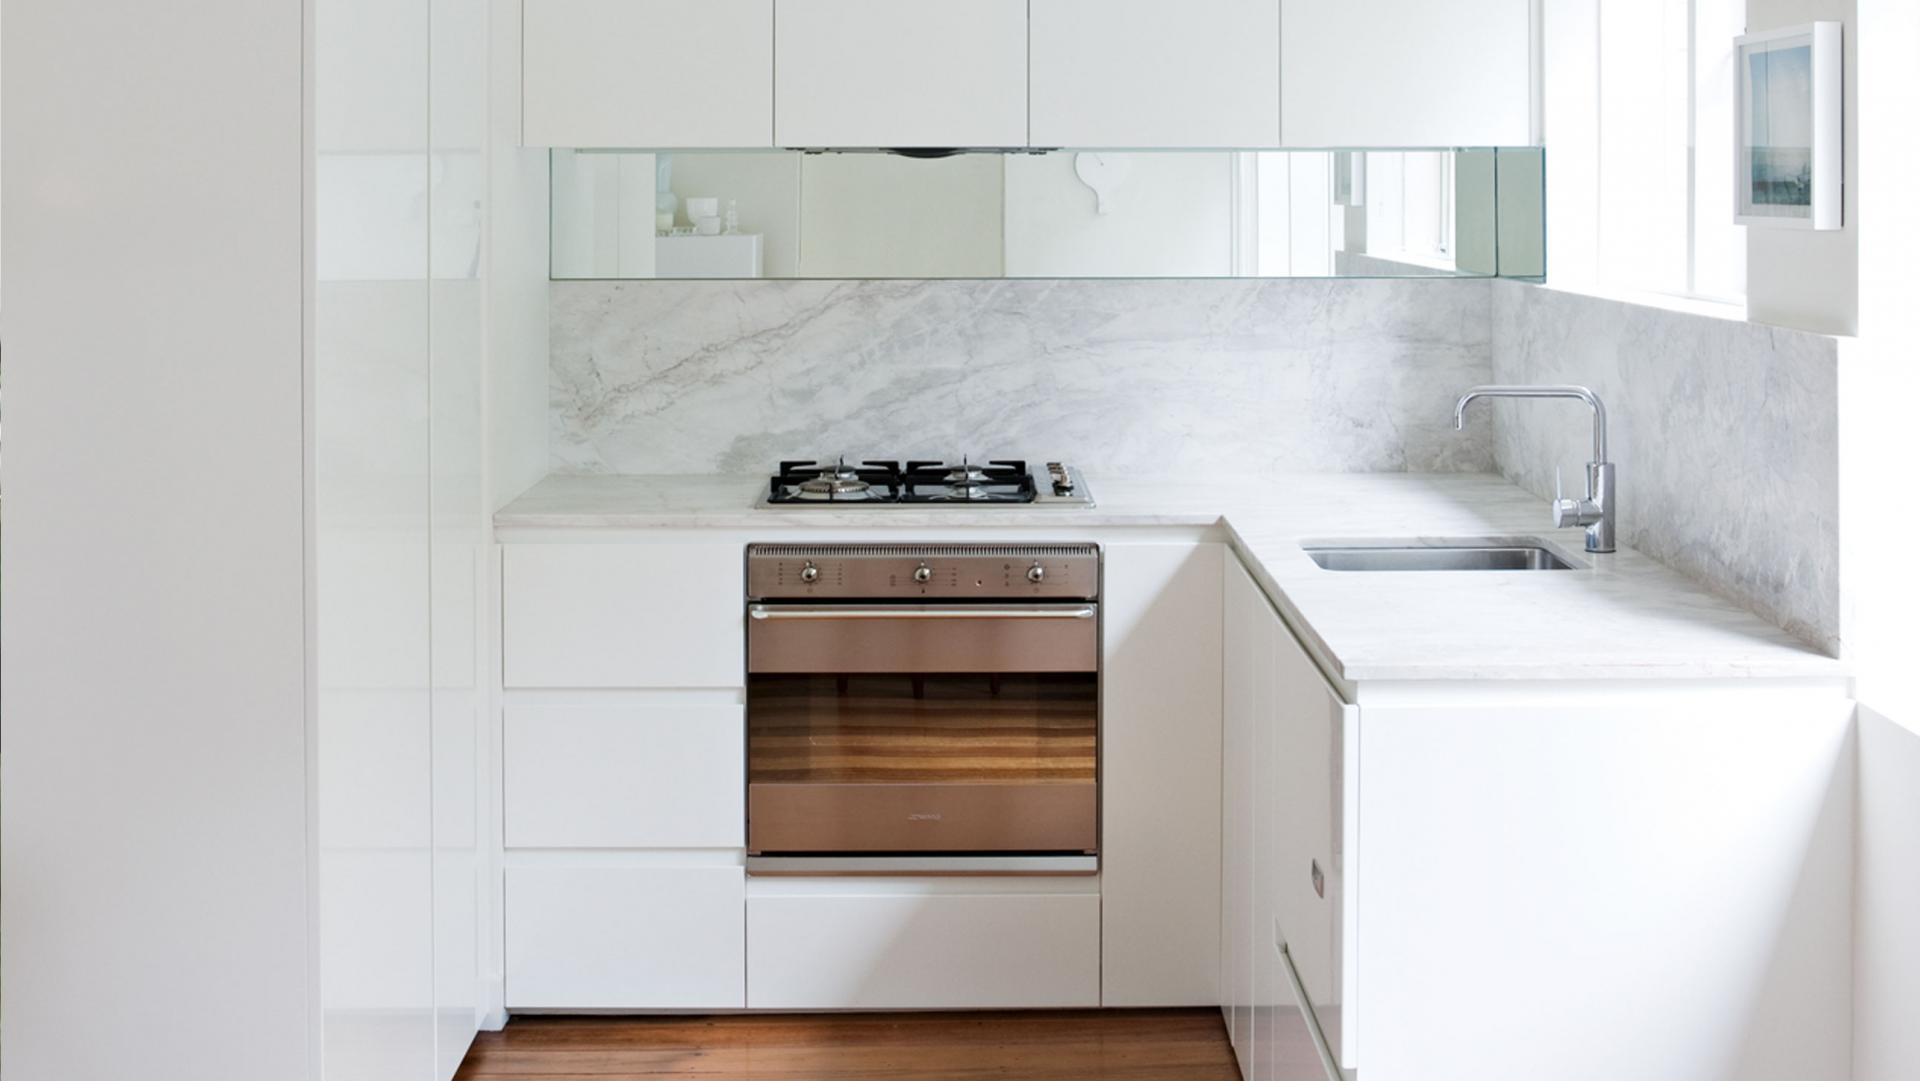 small-white-kitchen-rd11-20151027162447-q75-dx1920y-u1r1g0-c